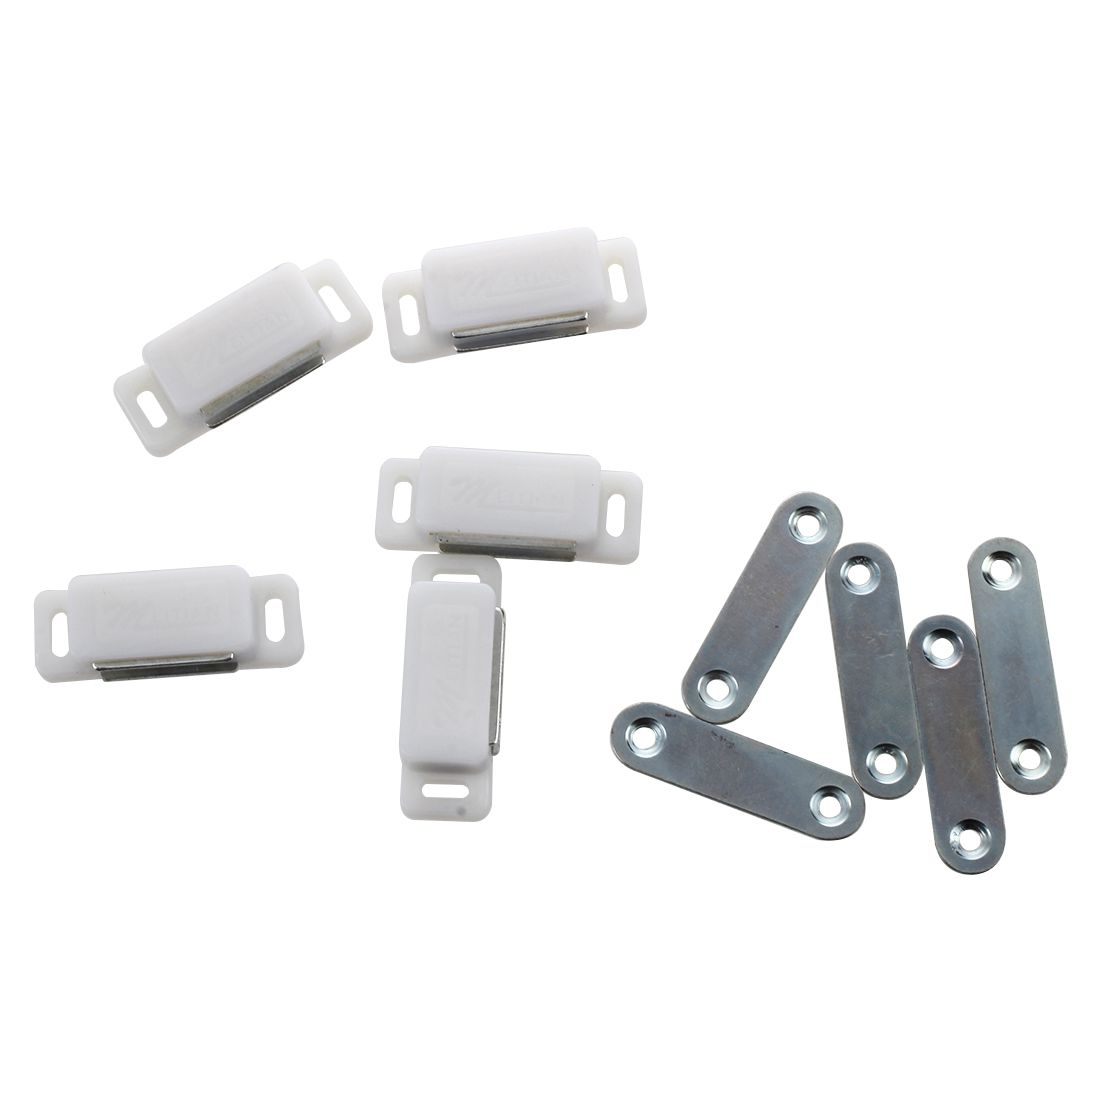 pocket french antique parts magnetic backyards knobs storm catches marine doors accessories components hidden door sliding latch hardware interior ford latches